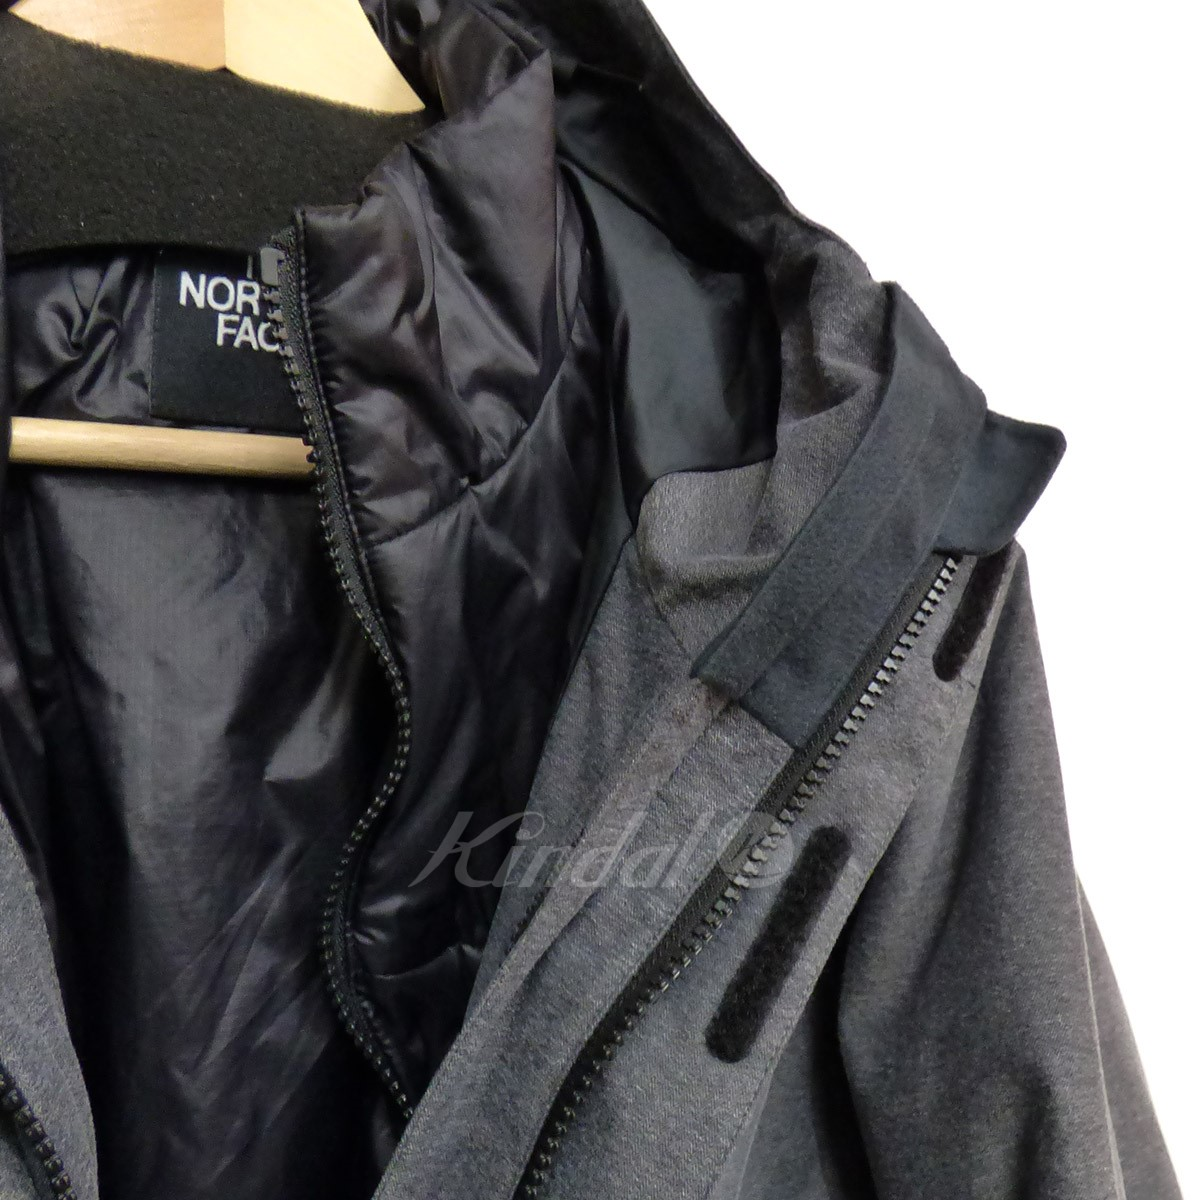 THE NORTH FACE Novelty Cassius Triclimate Jacket中綿付マウンテン ...